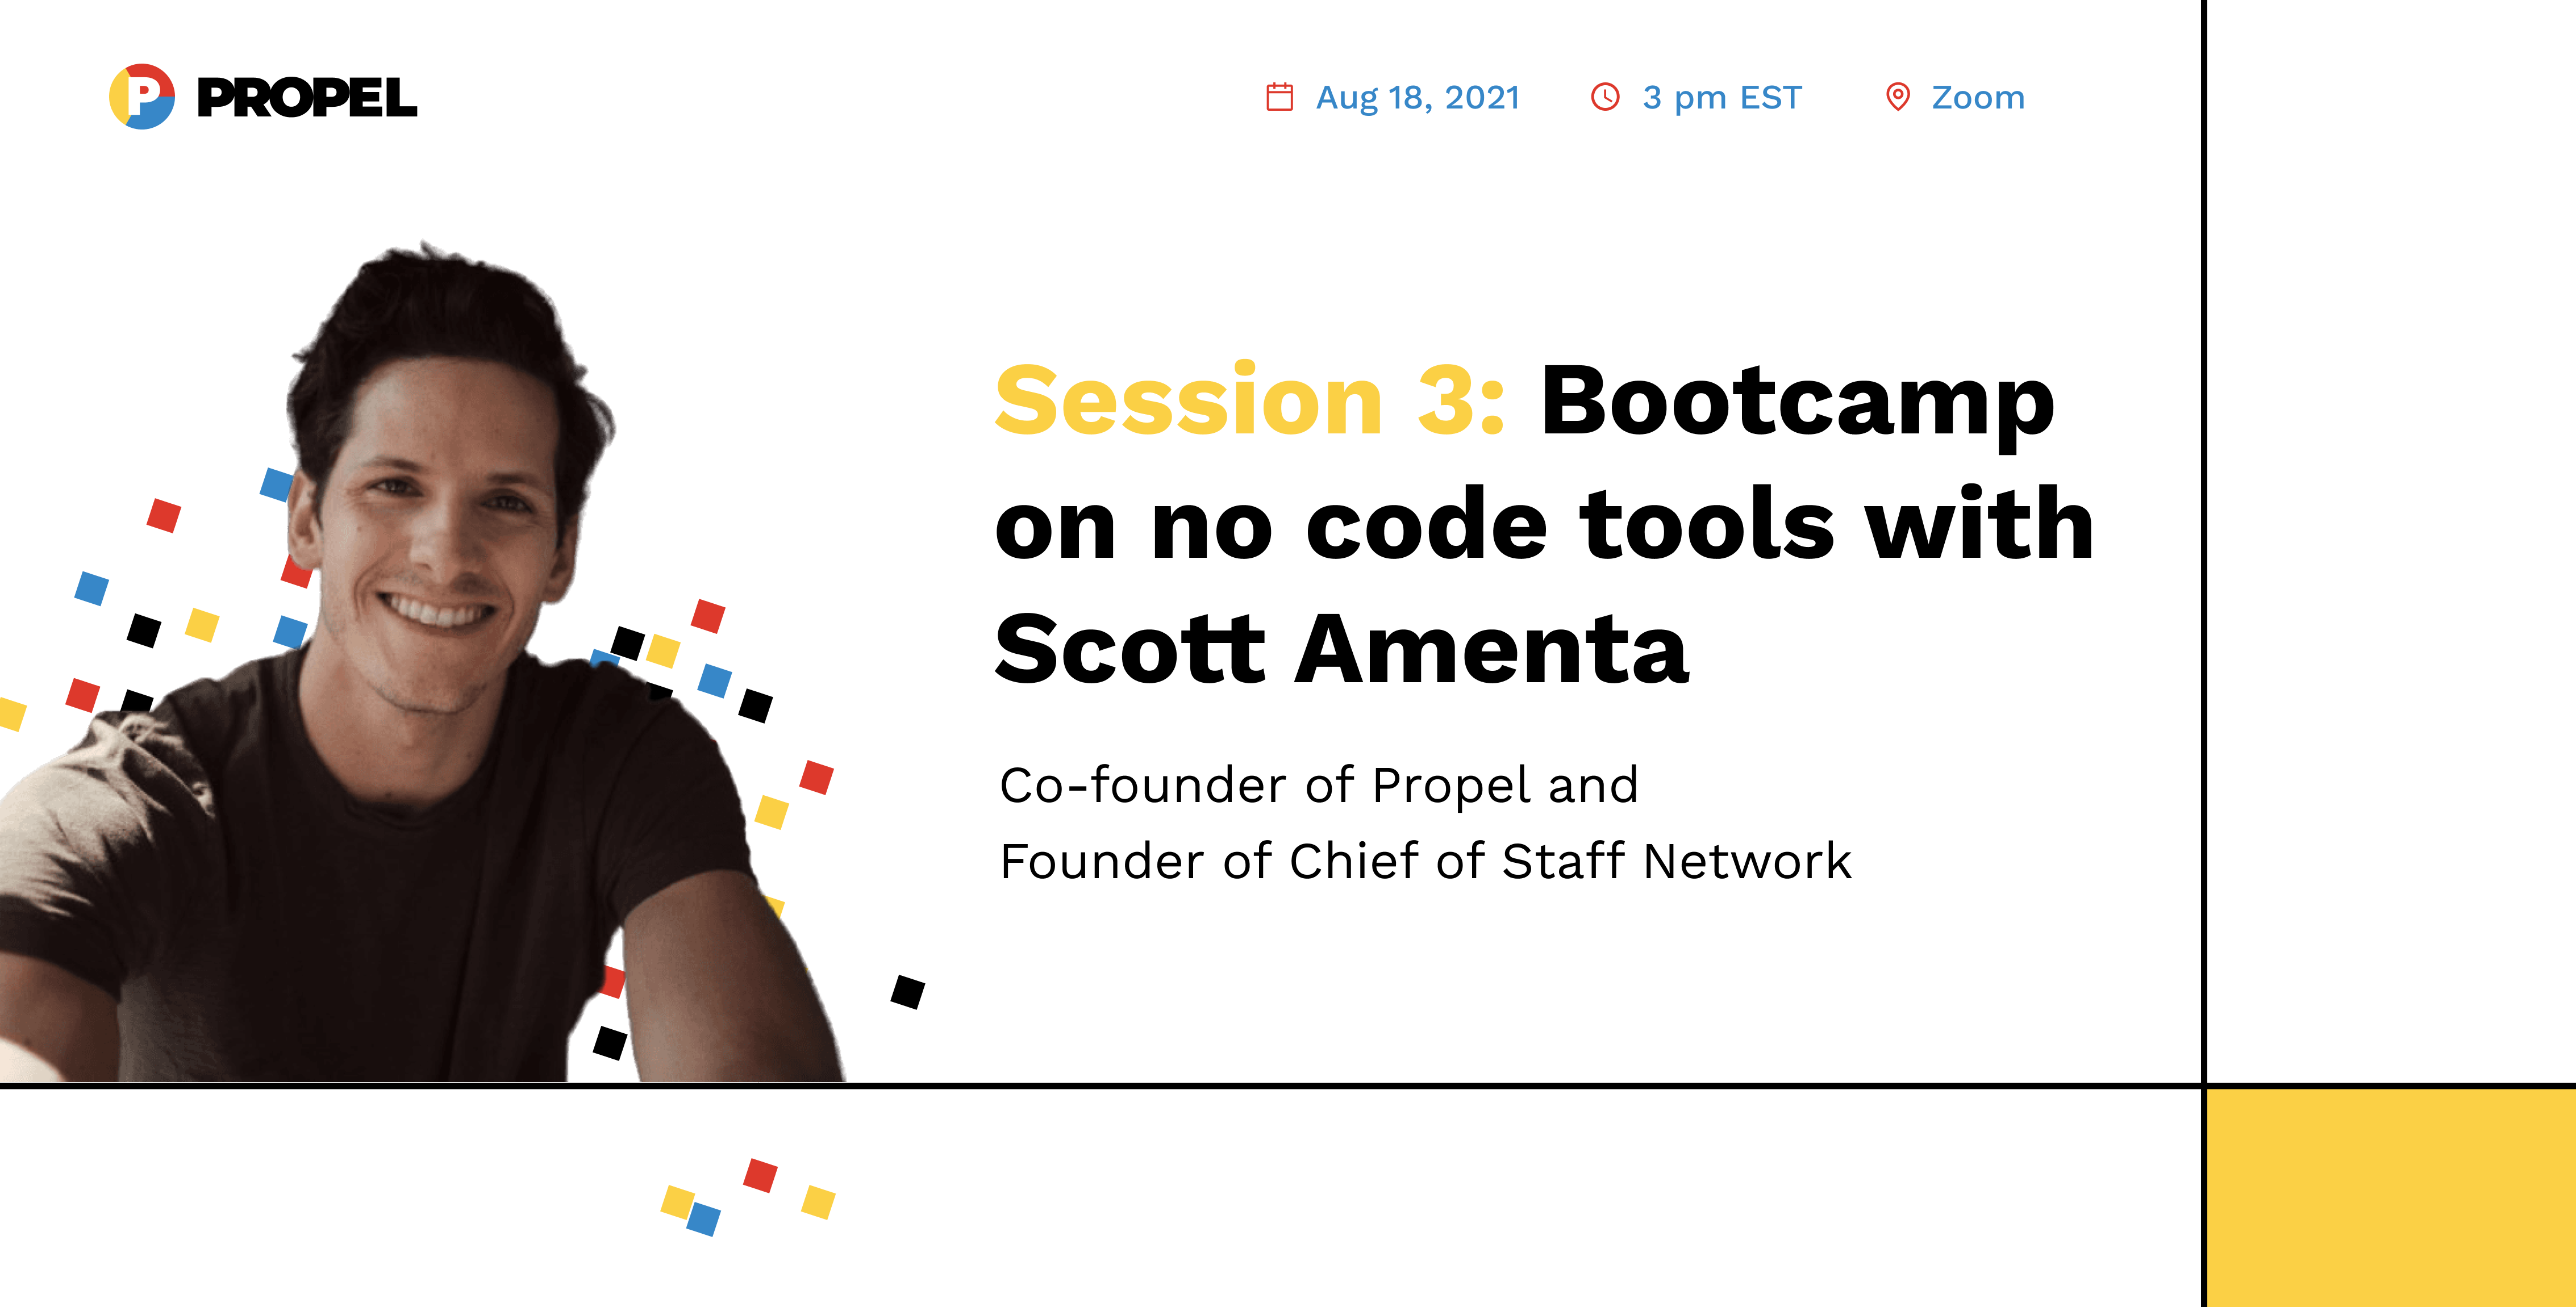 Session 3: Workshop on no code tools with Scott Amenta, Co-founder of Propel and Founder of Chief of Staff Network